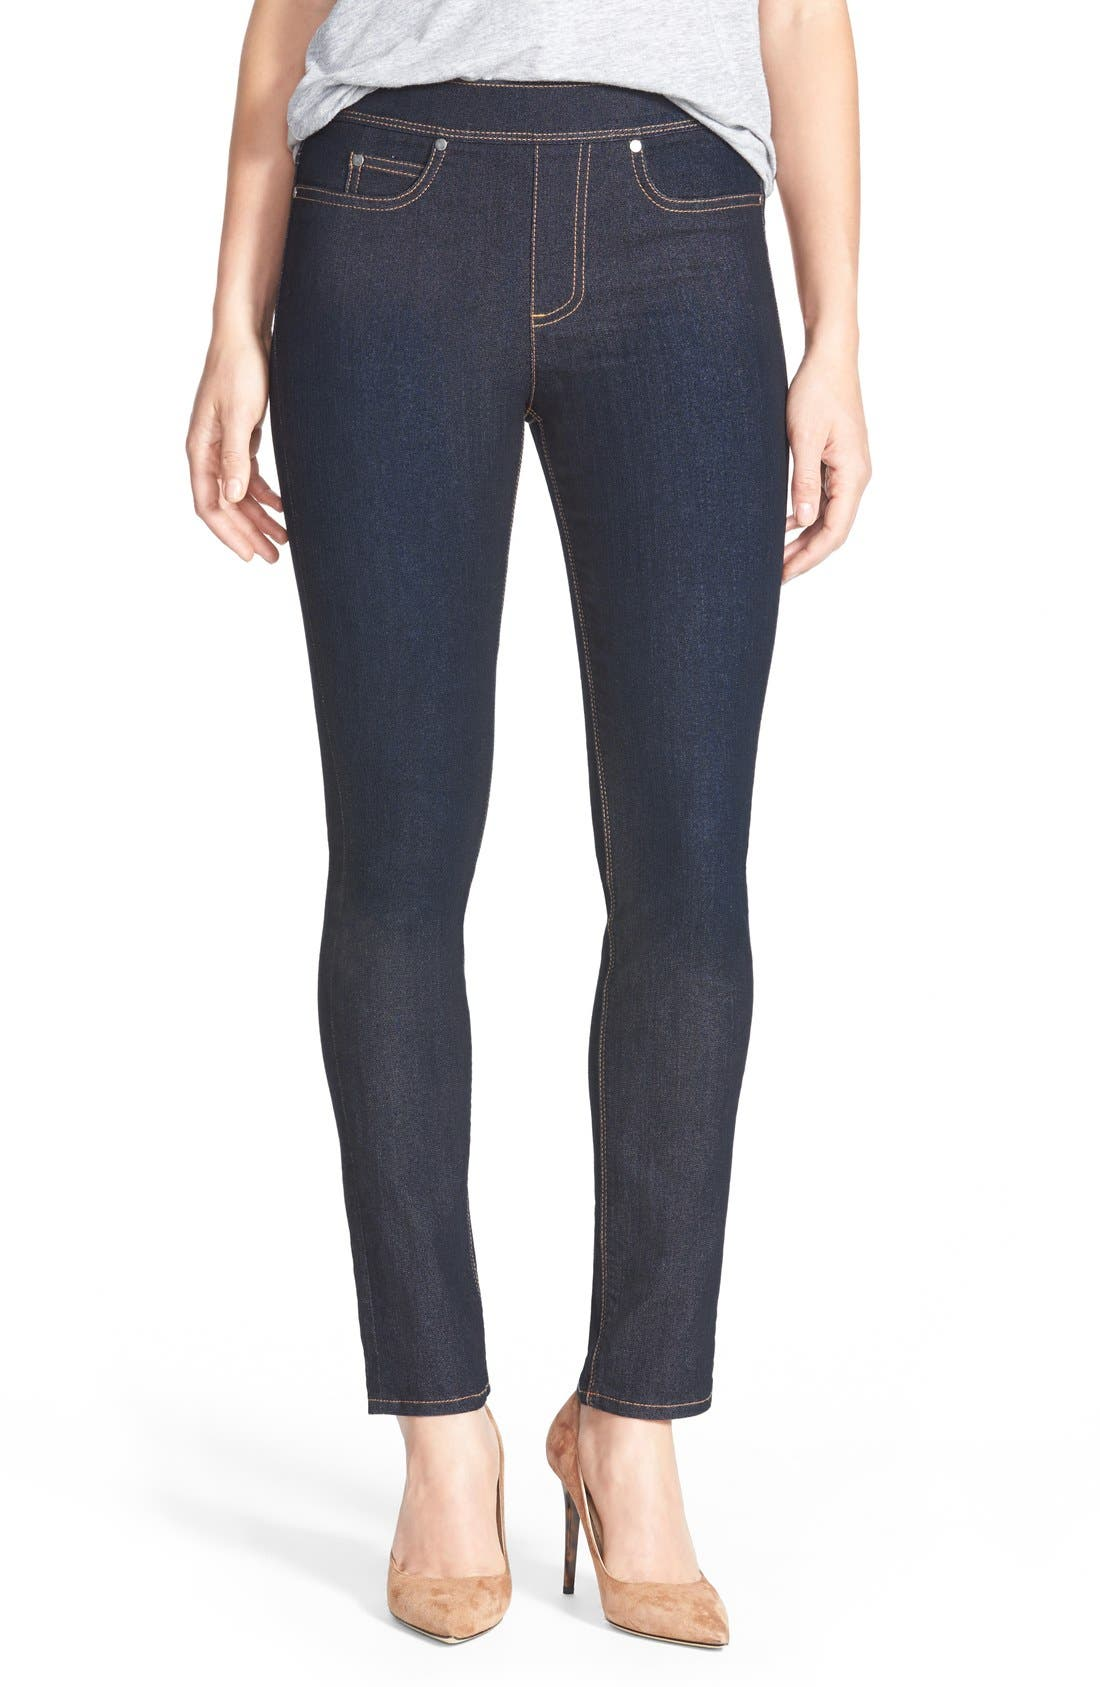 Two by Vince Camuto Stretch Denim Leggings